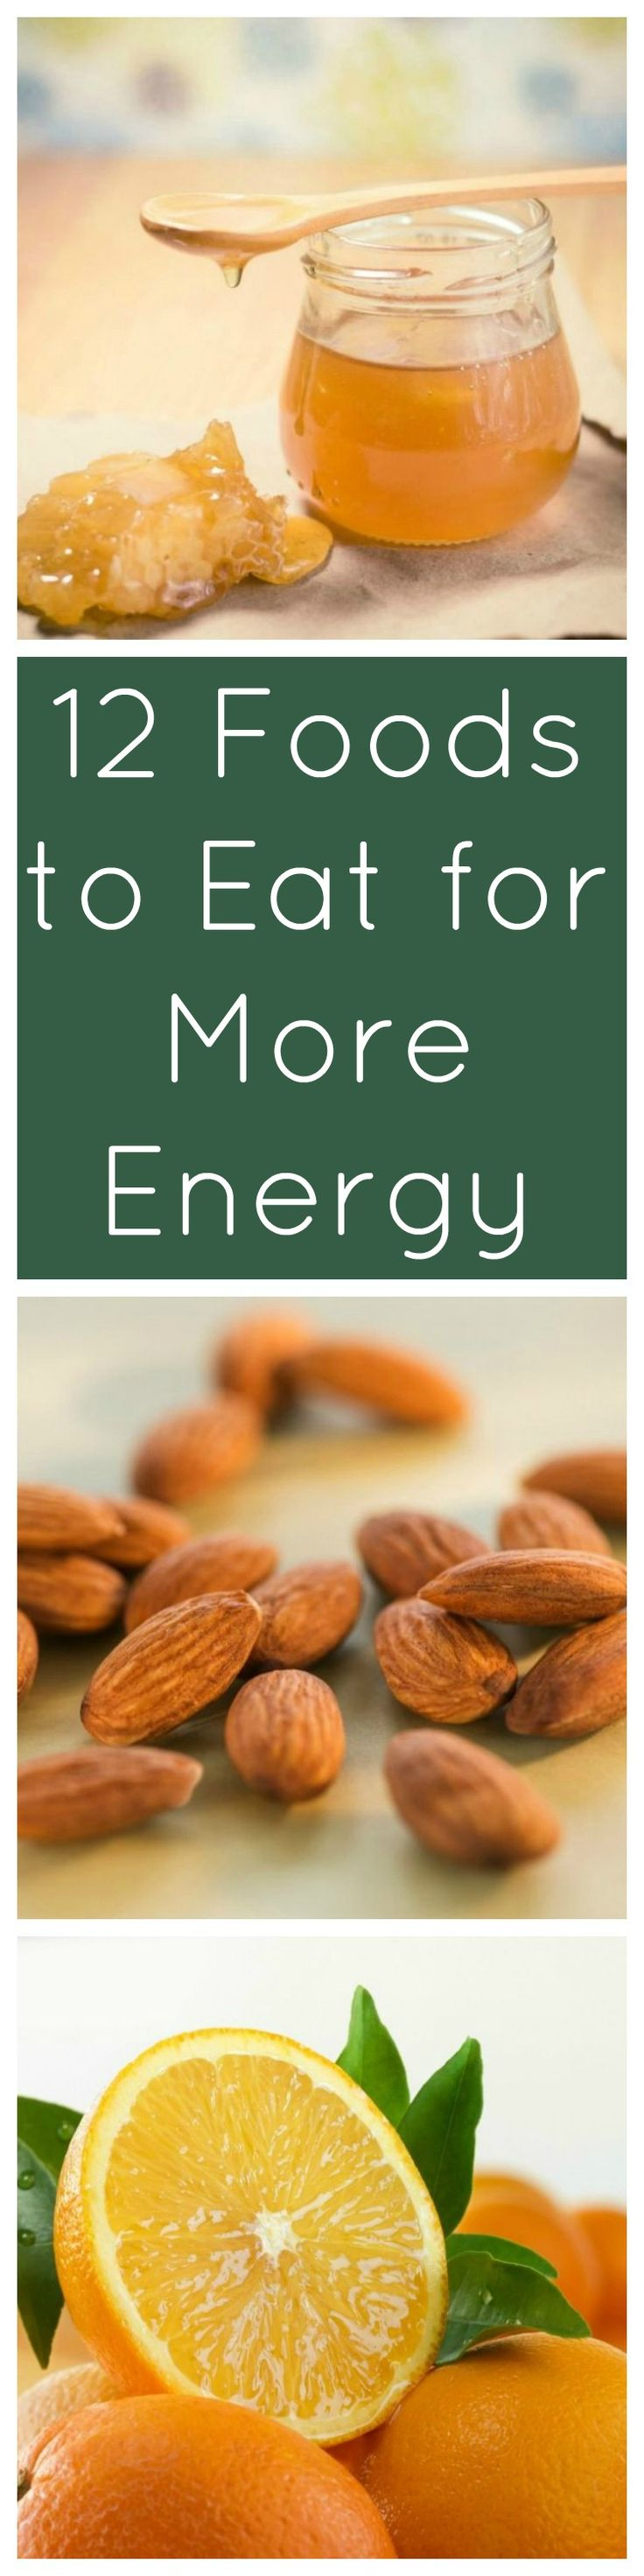 12 Best Foods to Eat for More Energy